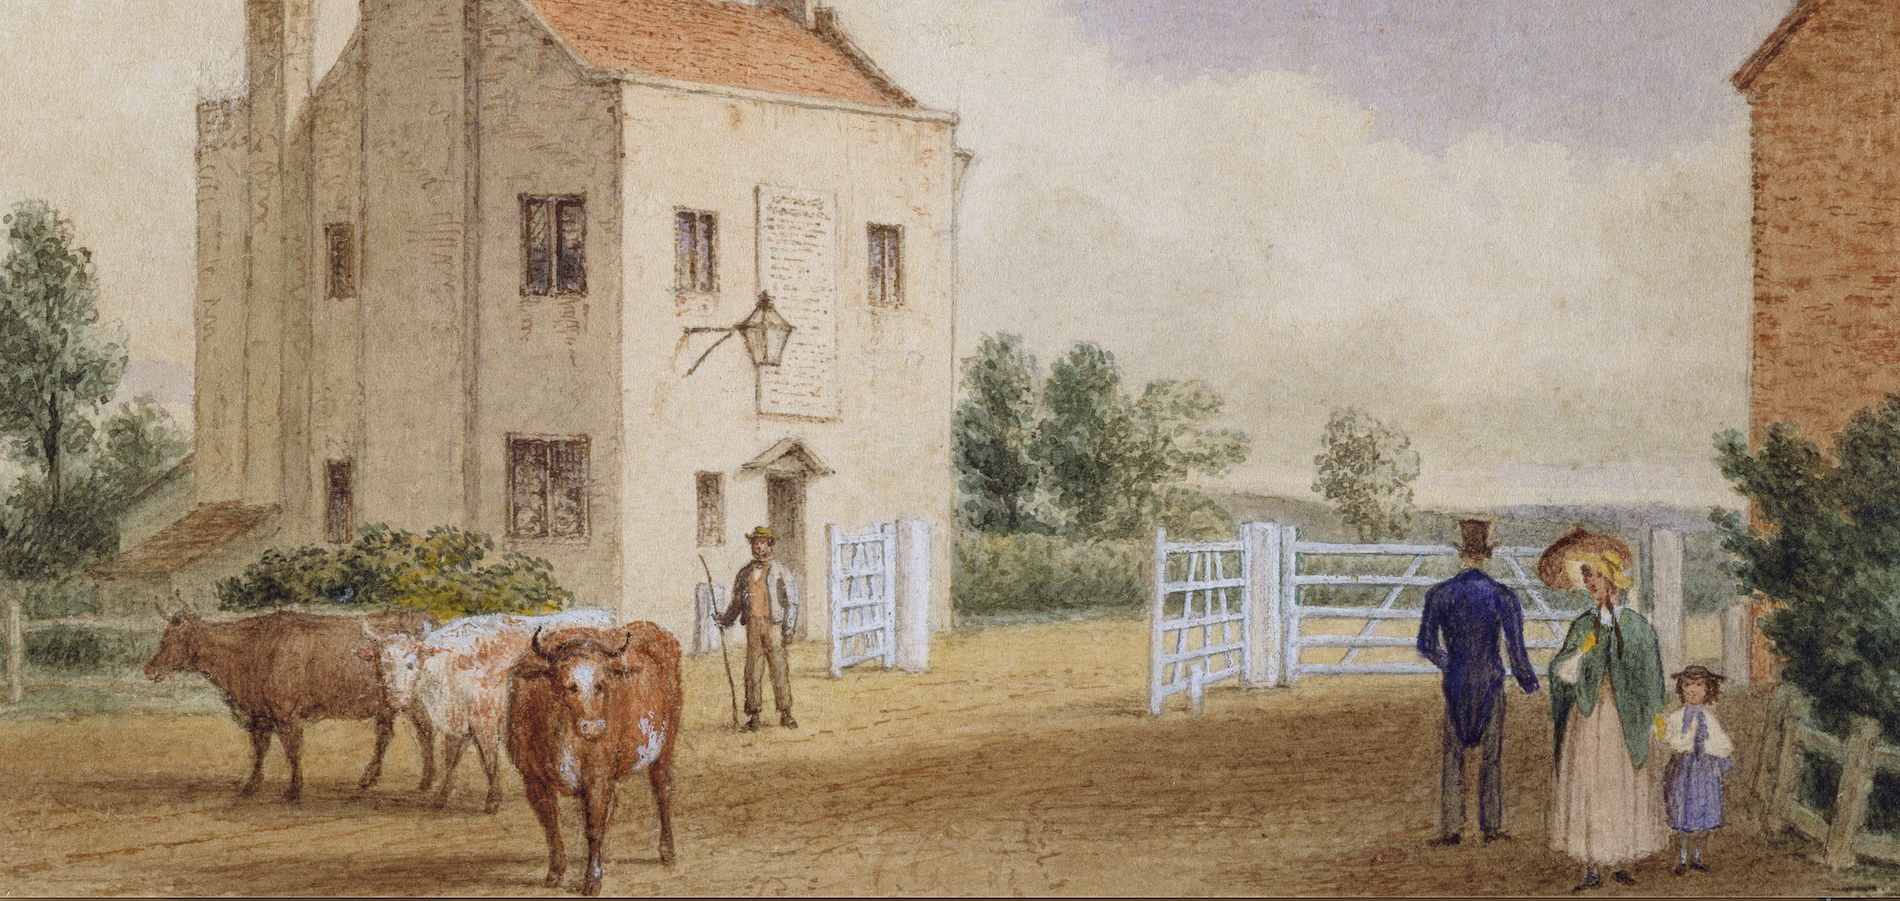 What Was Life Like For Jews In The Rest Of the World During the American Revolution?